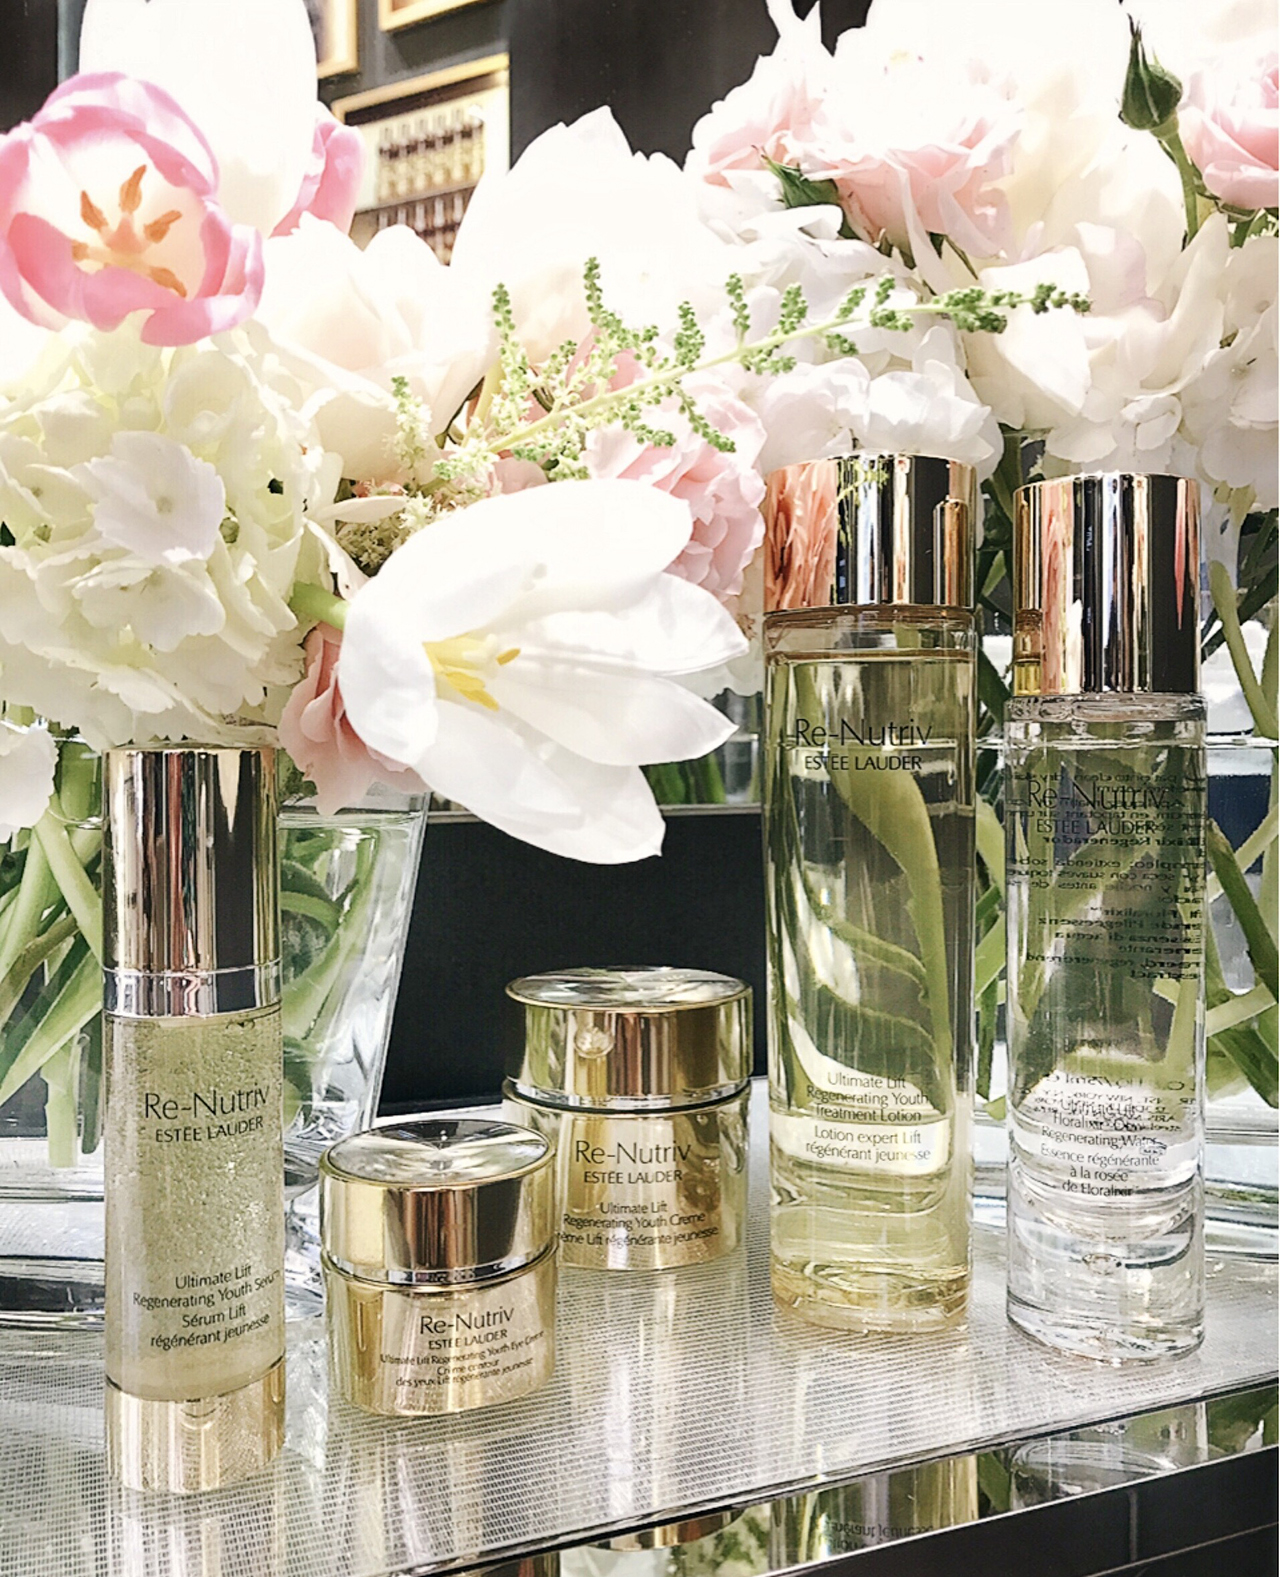 Estee Lauder Renutriv Ultimate Lift Regenerating Youth Collection